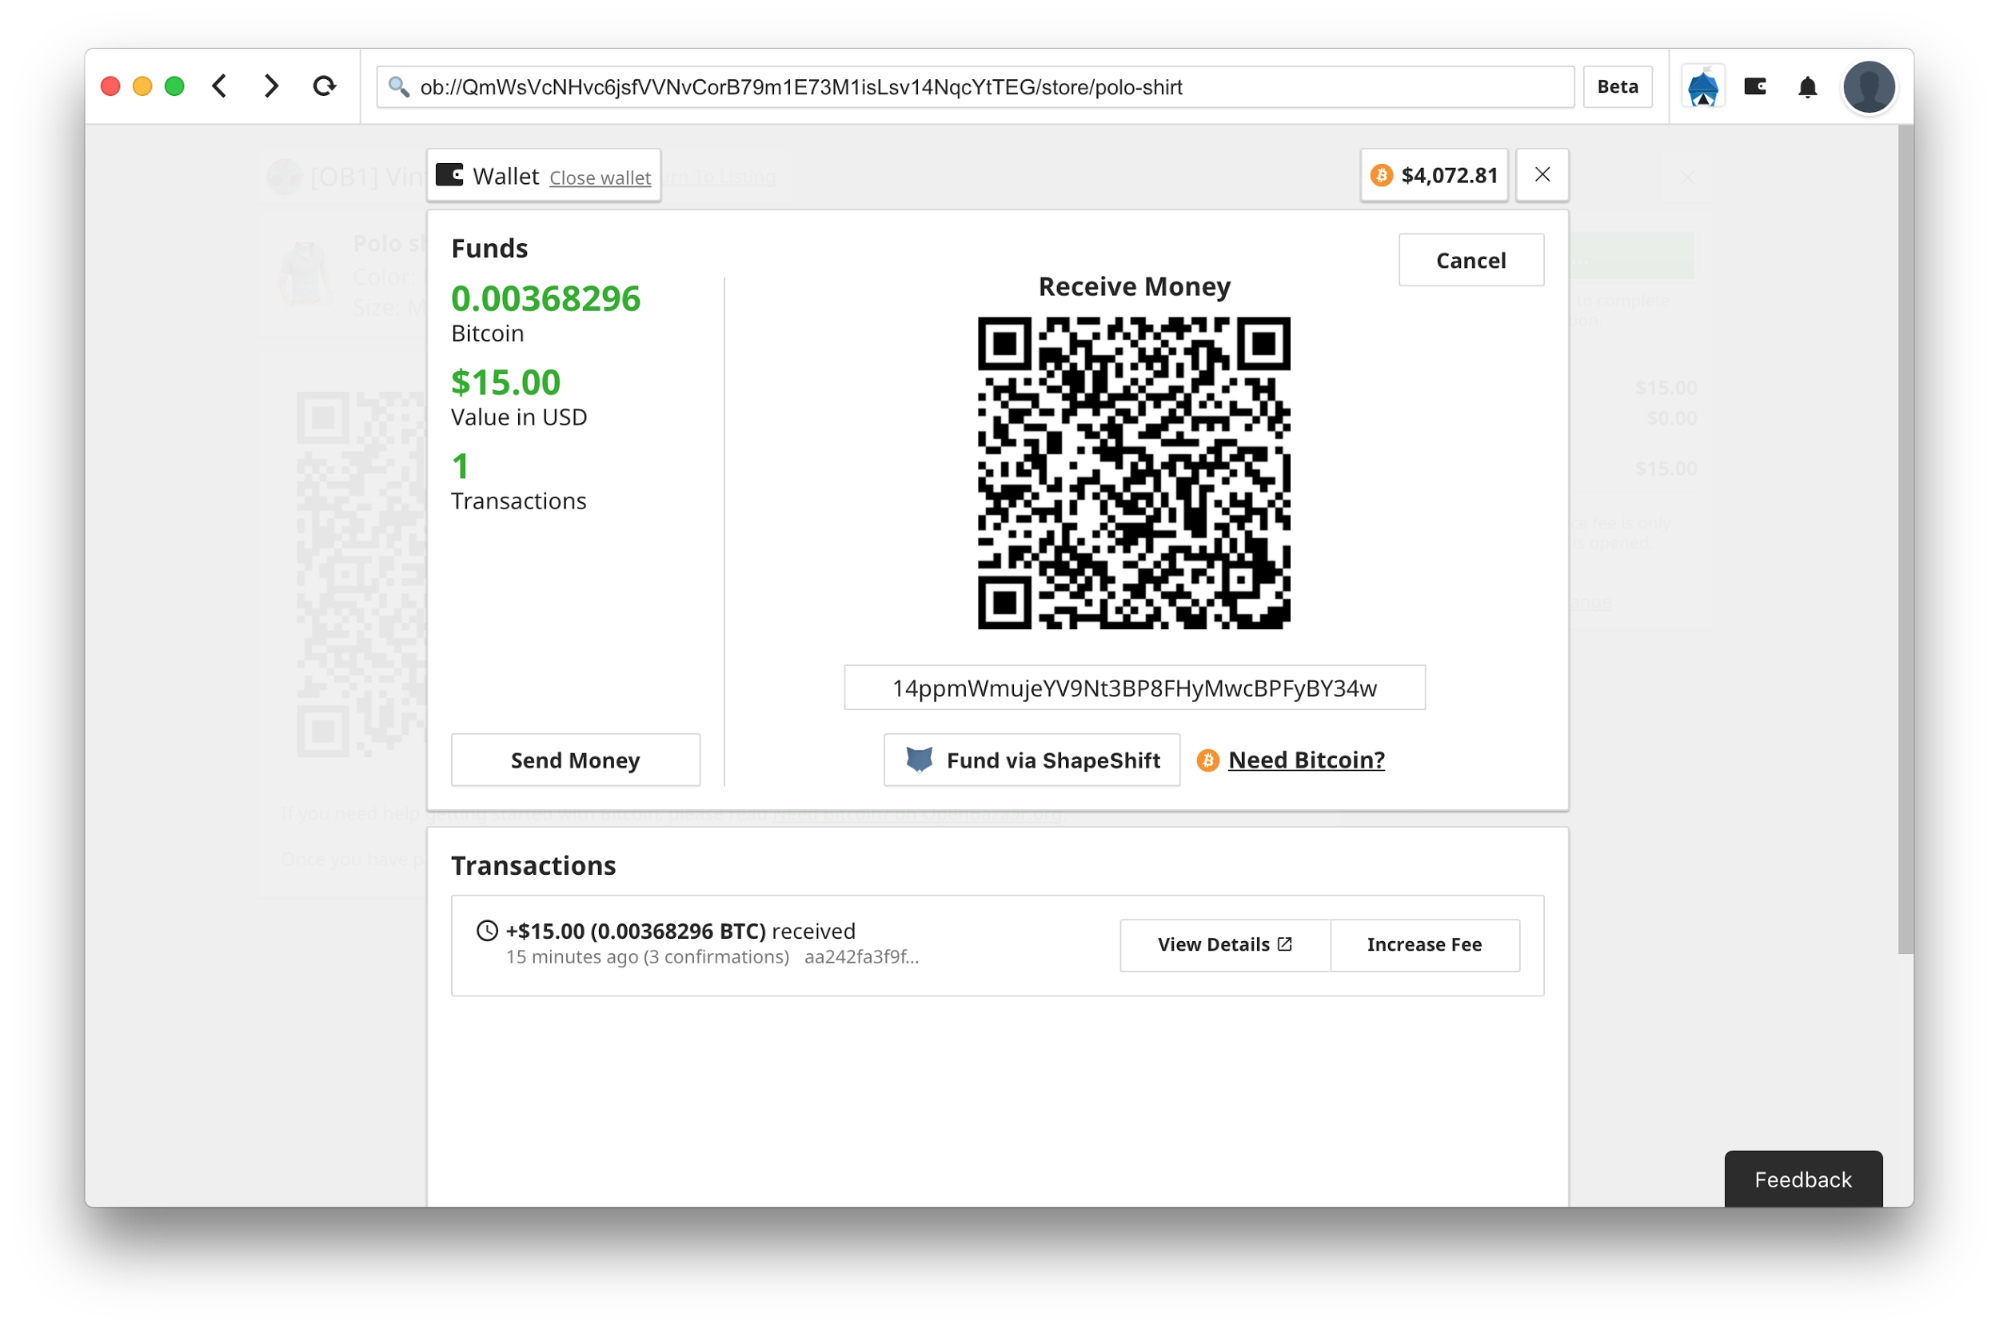 A screenshot showing the ability to fund an OpenBazaar wallet with Zcash